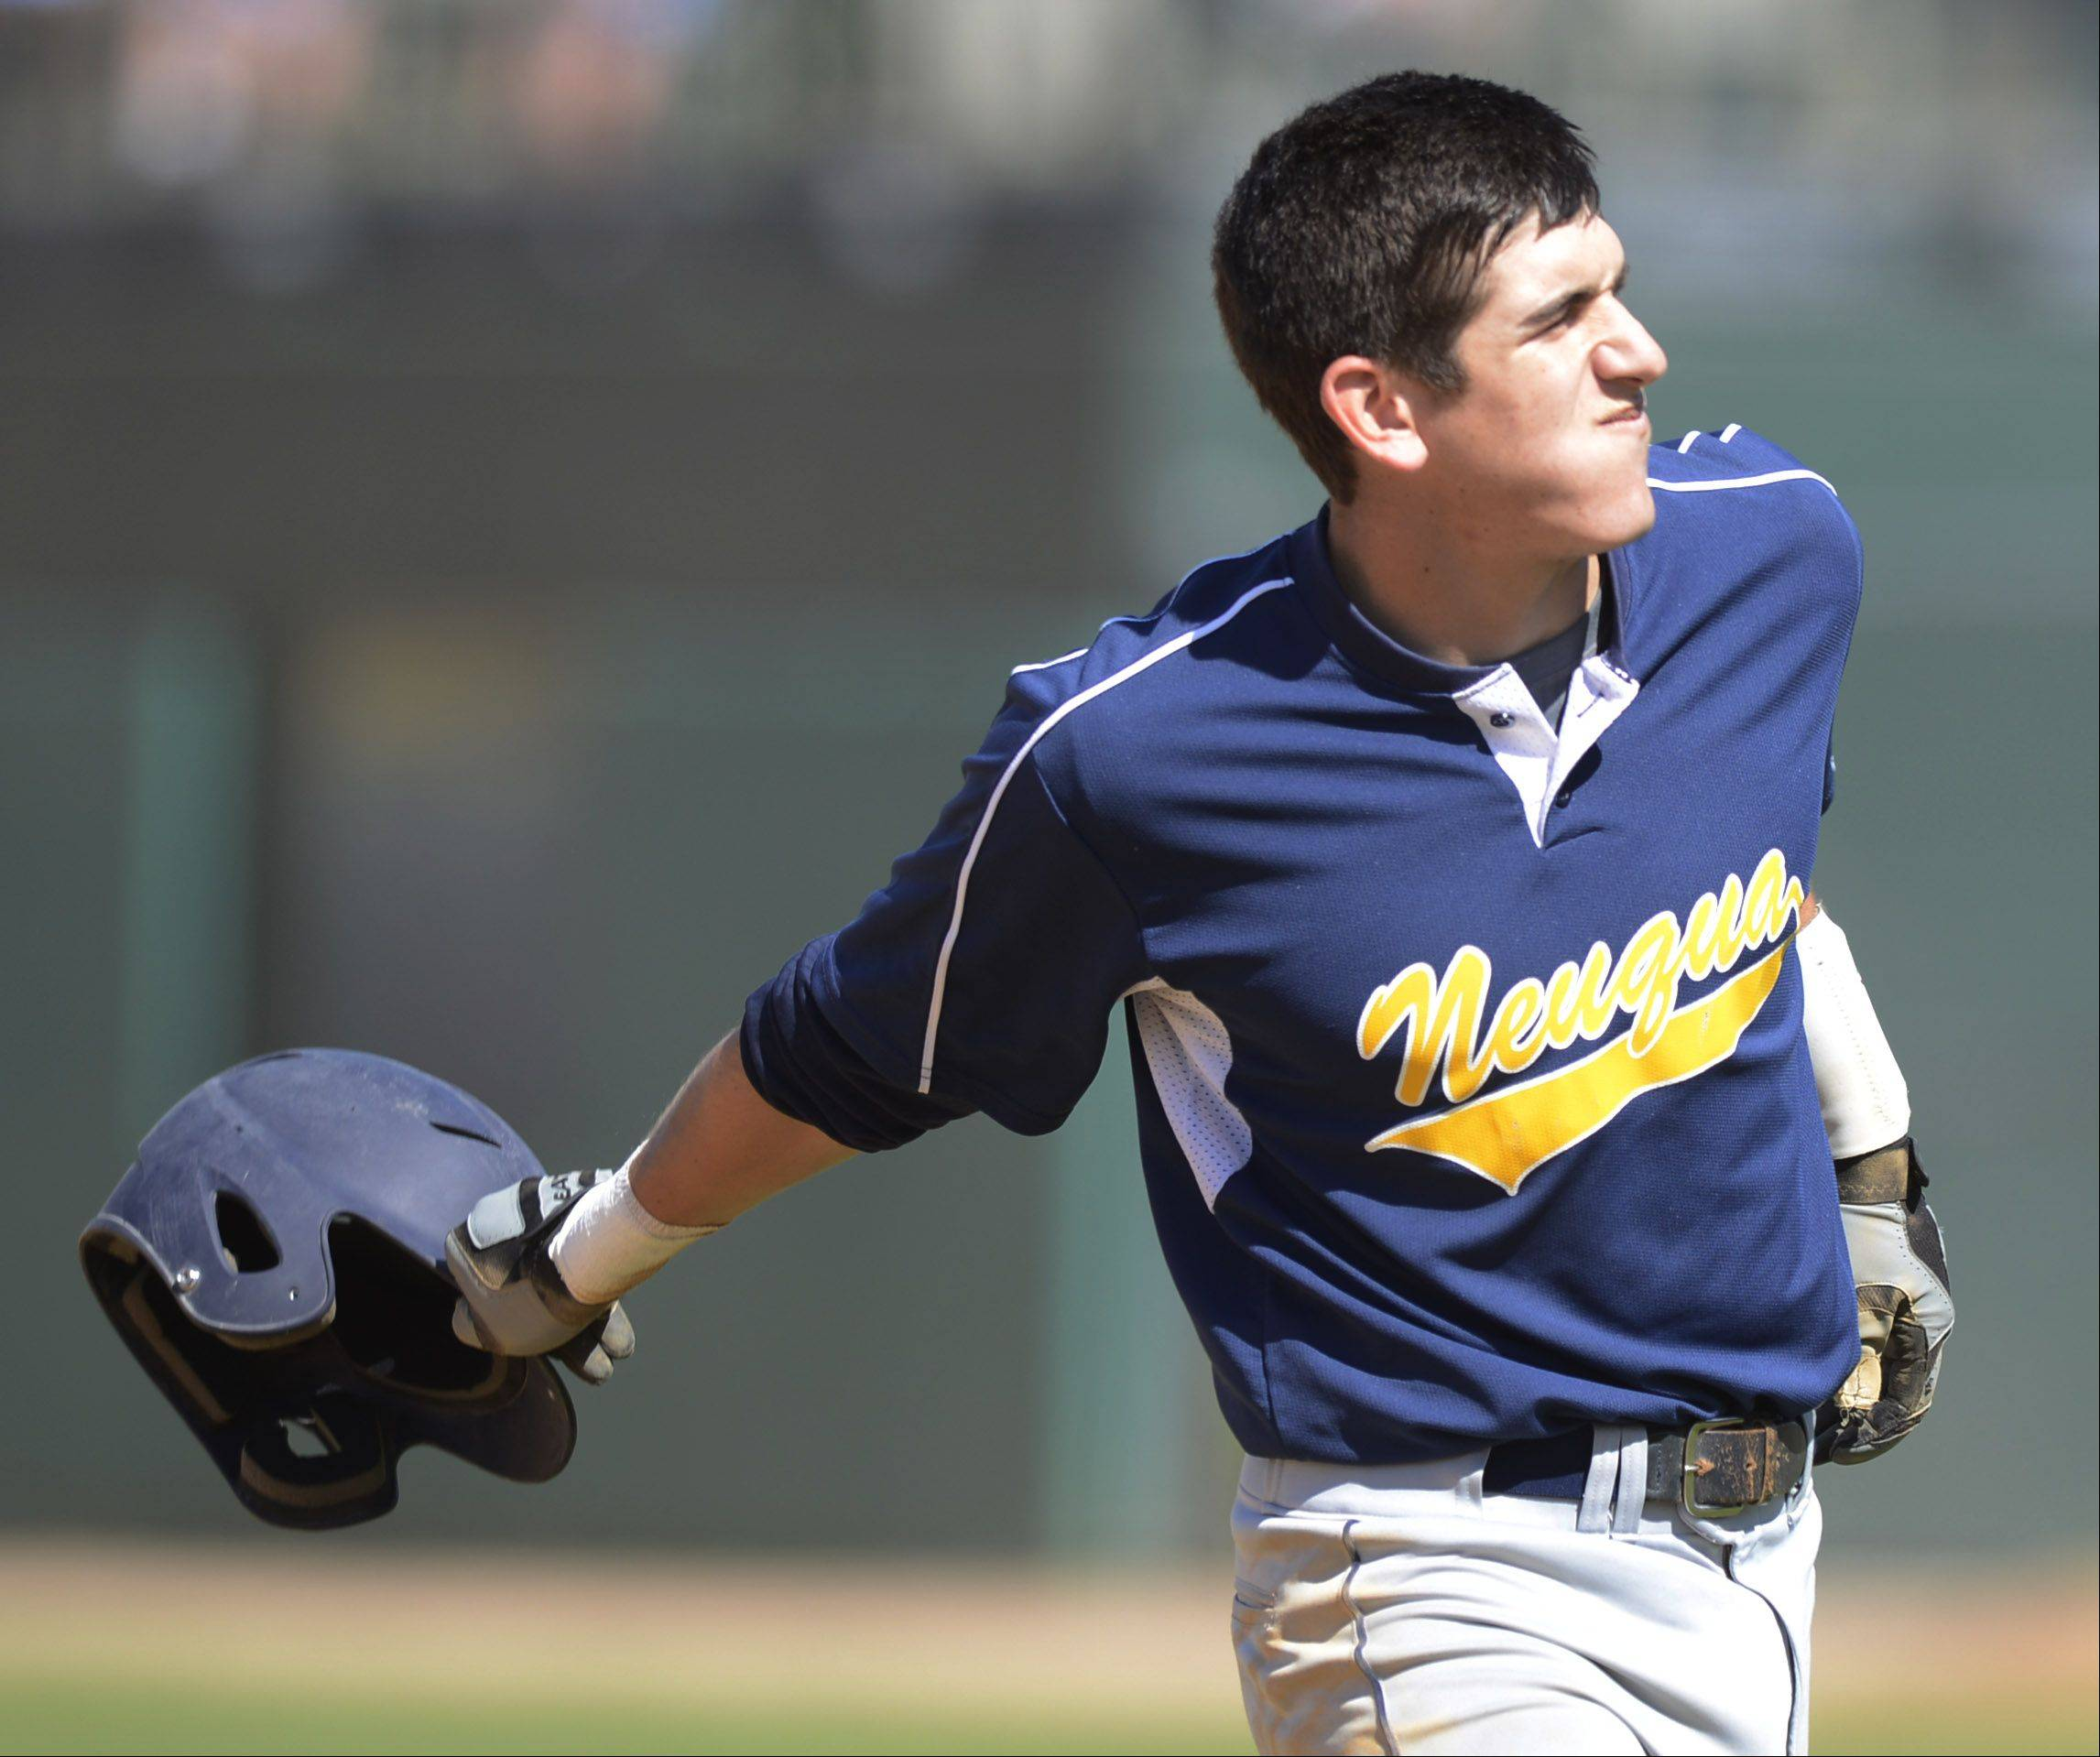 Neuqua Valley's Drew Sterioti flips his helmet at the end of the fourth inning during the Class 4A state baseball semifinals against Mt. Careml at Silver Cross Field in Joliet Friday.